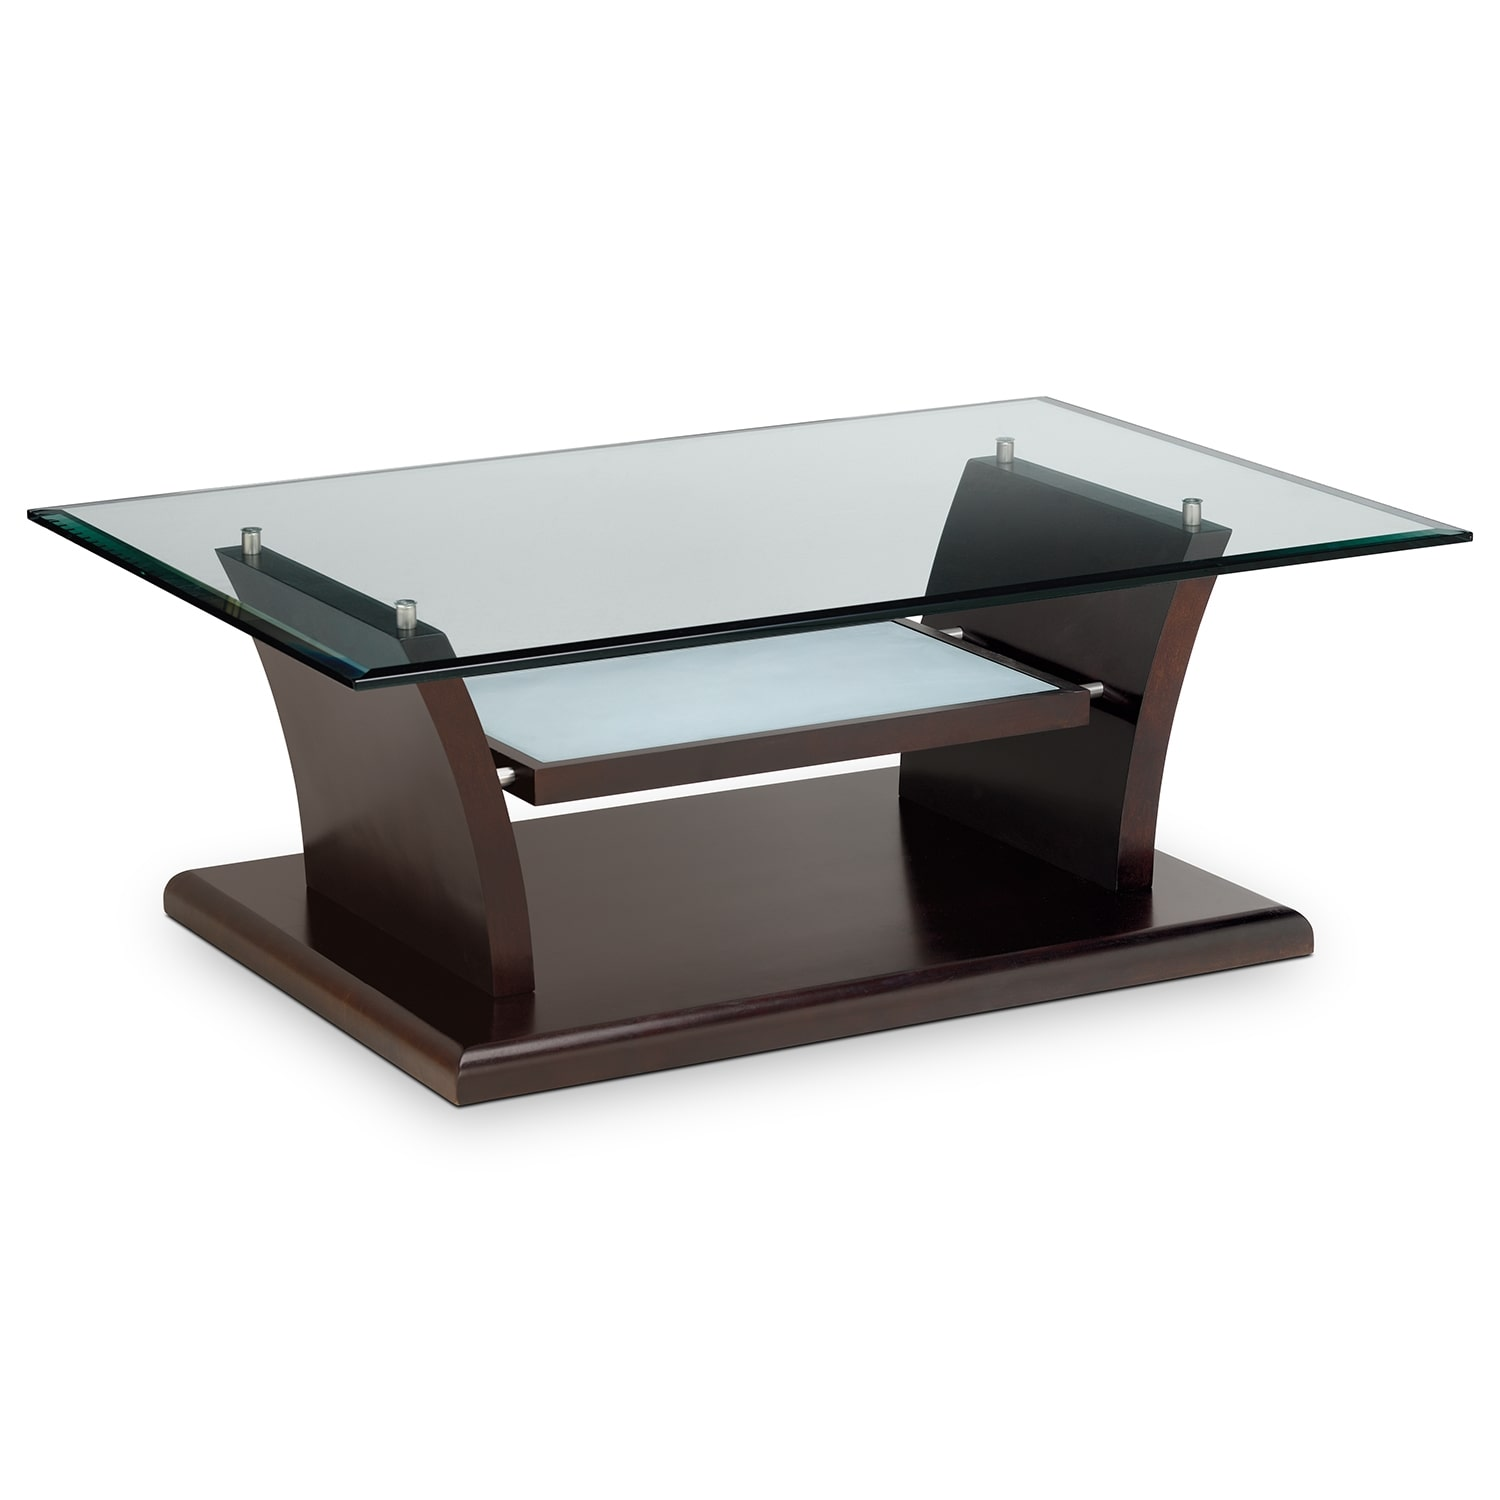 [Bell Aer Cocktail Table]